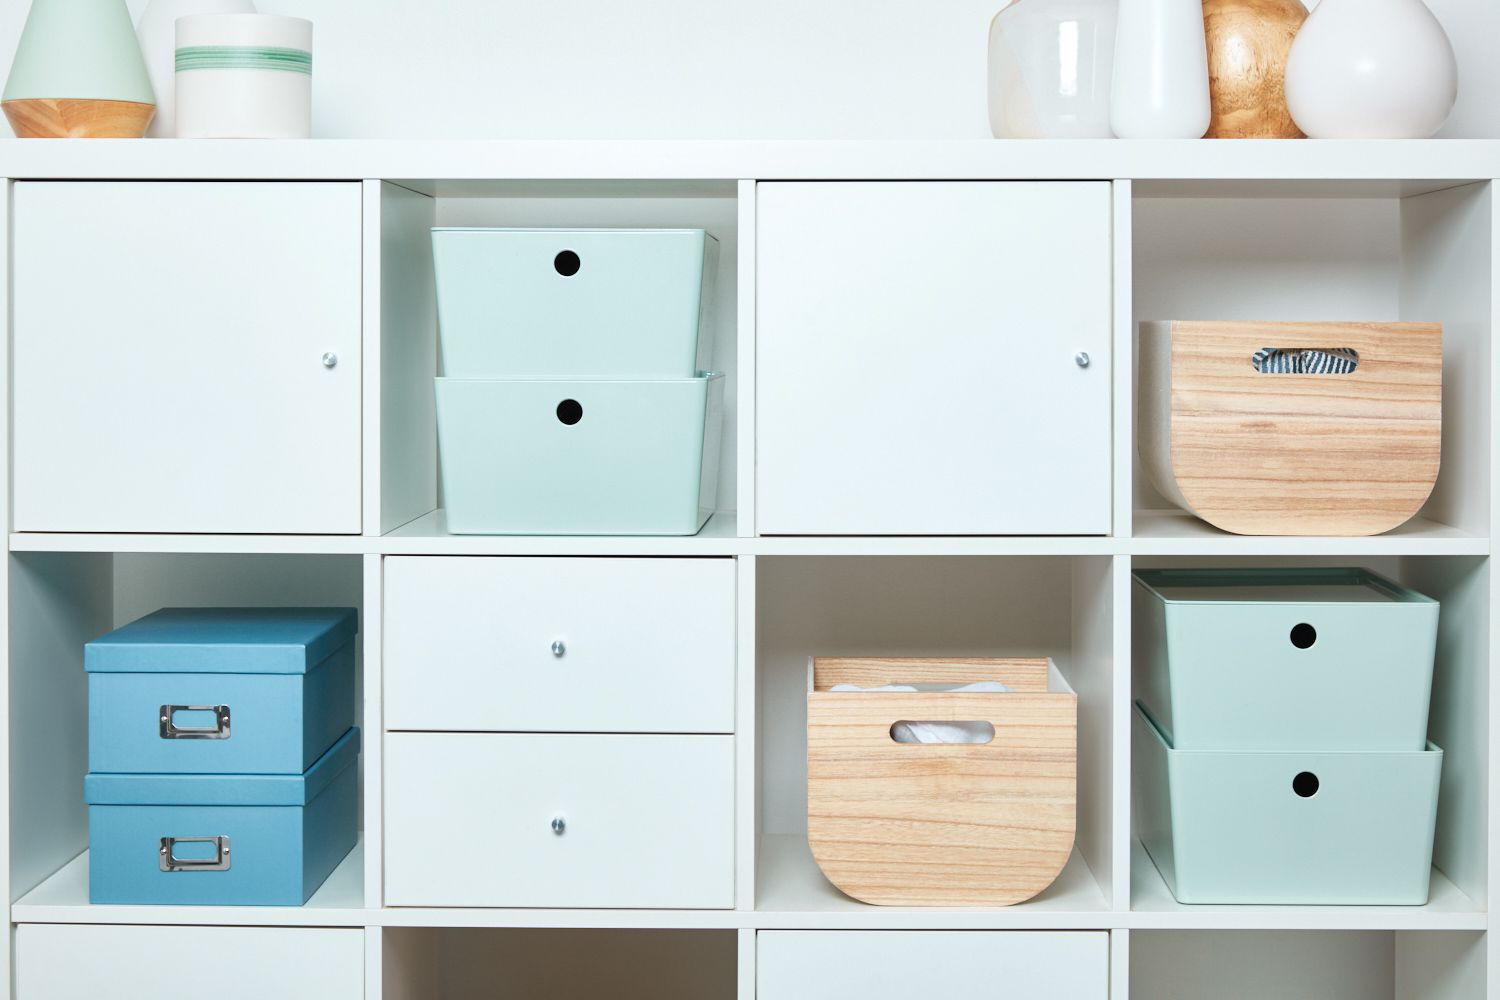 items neatly organized and stored